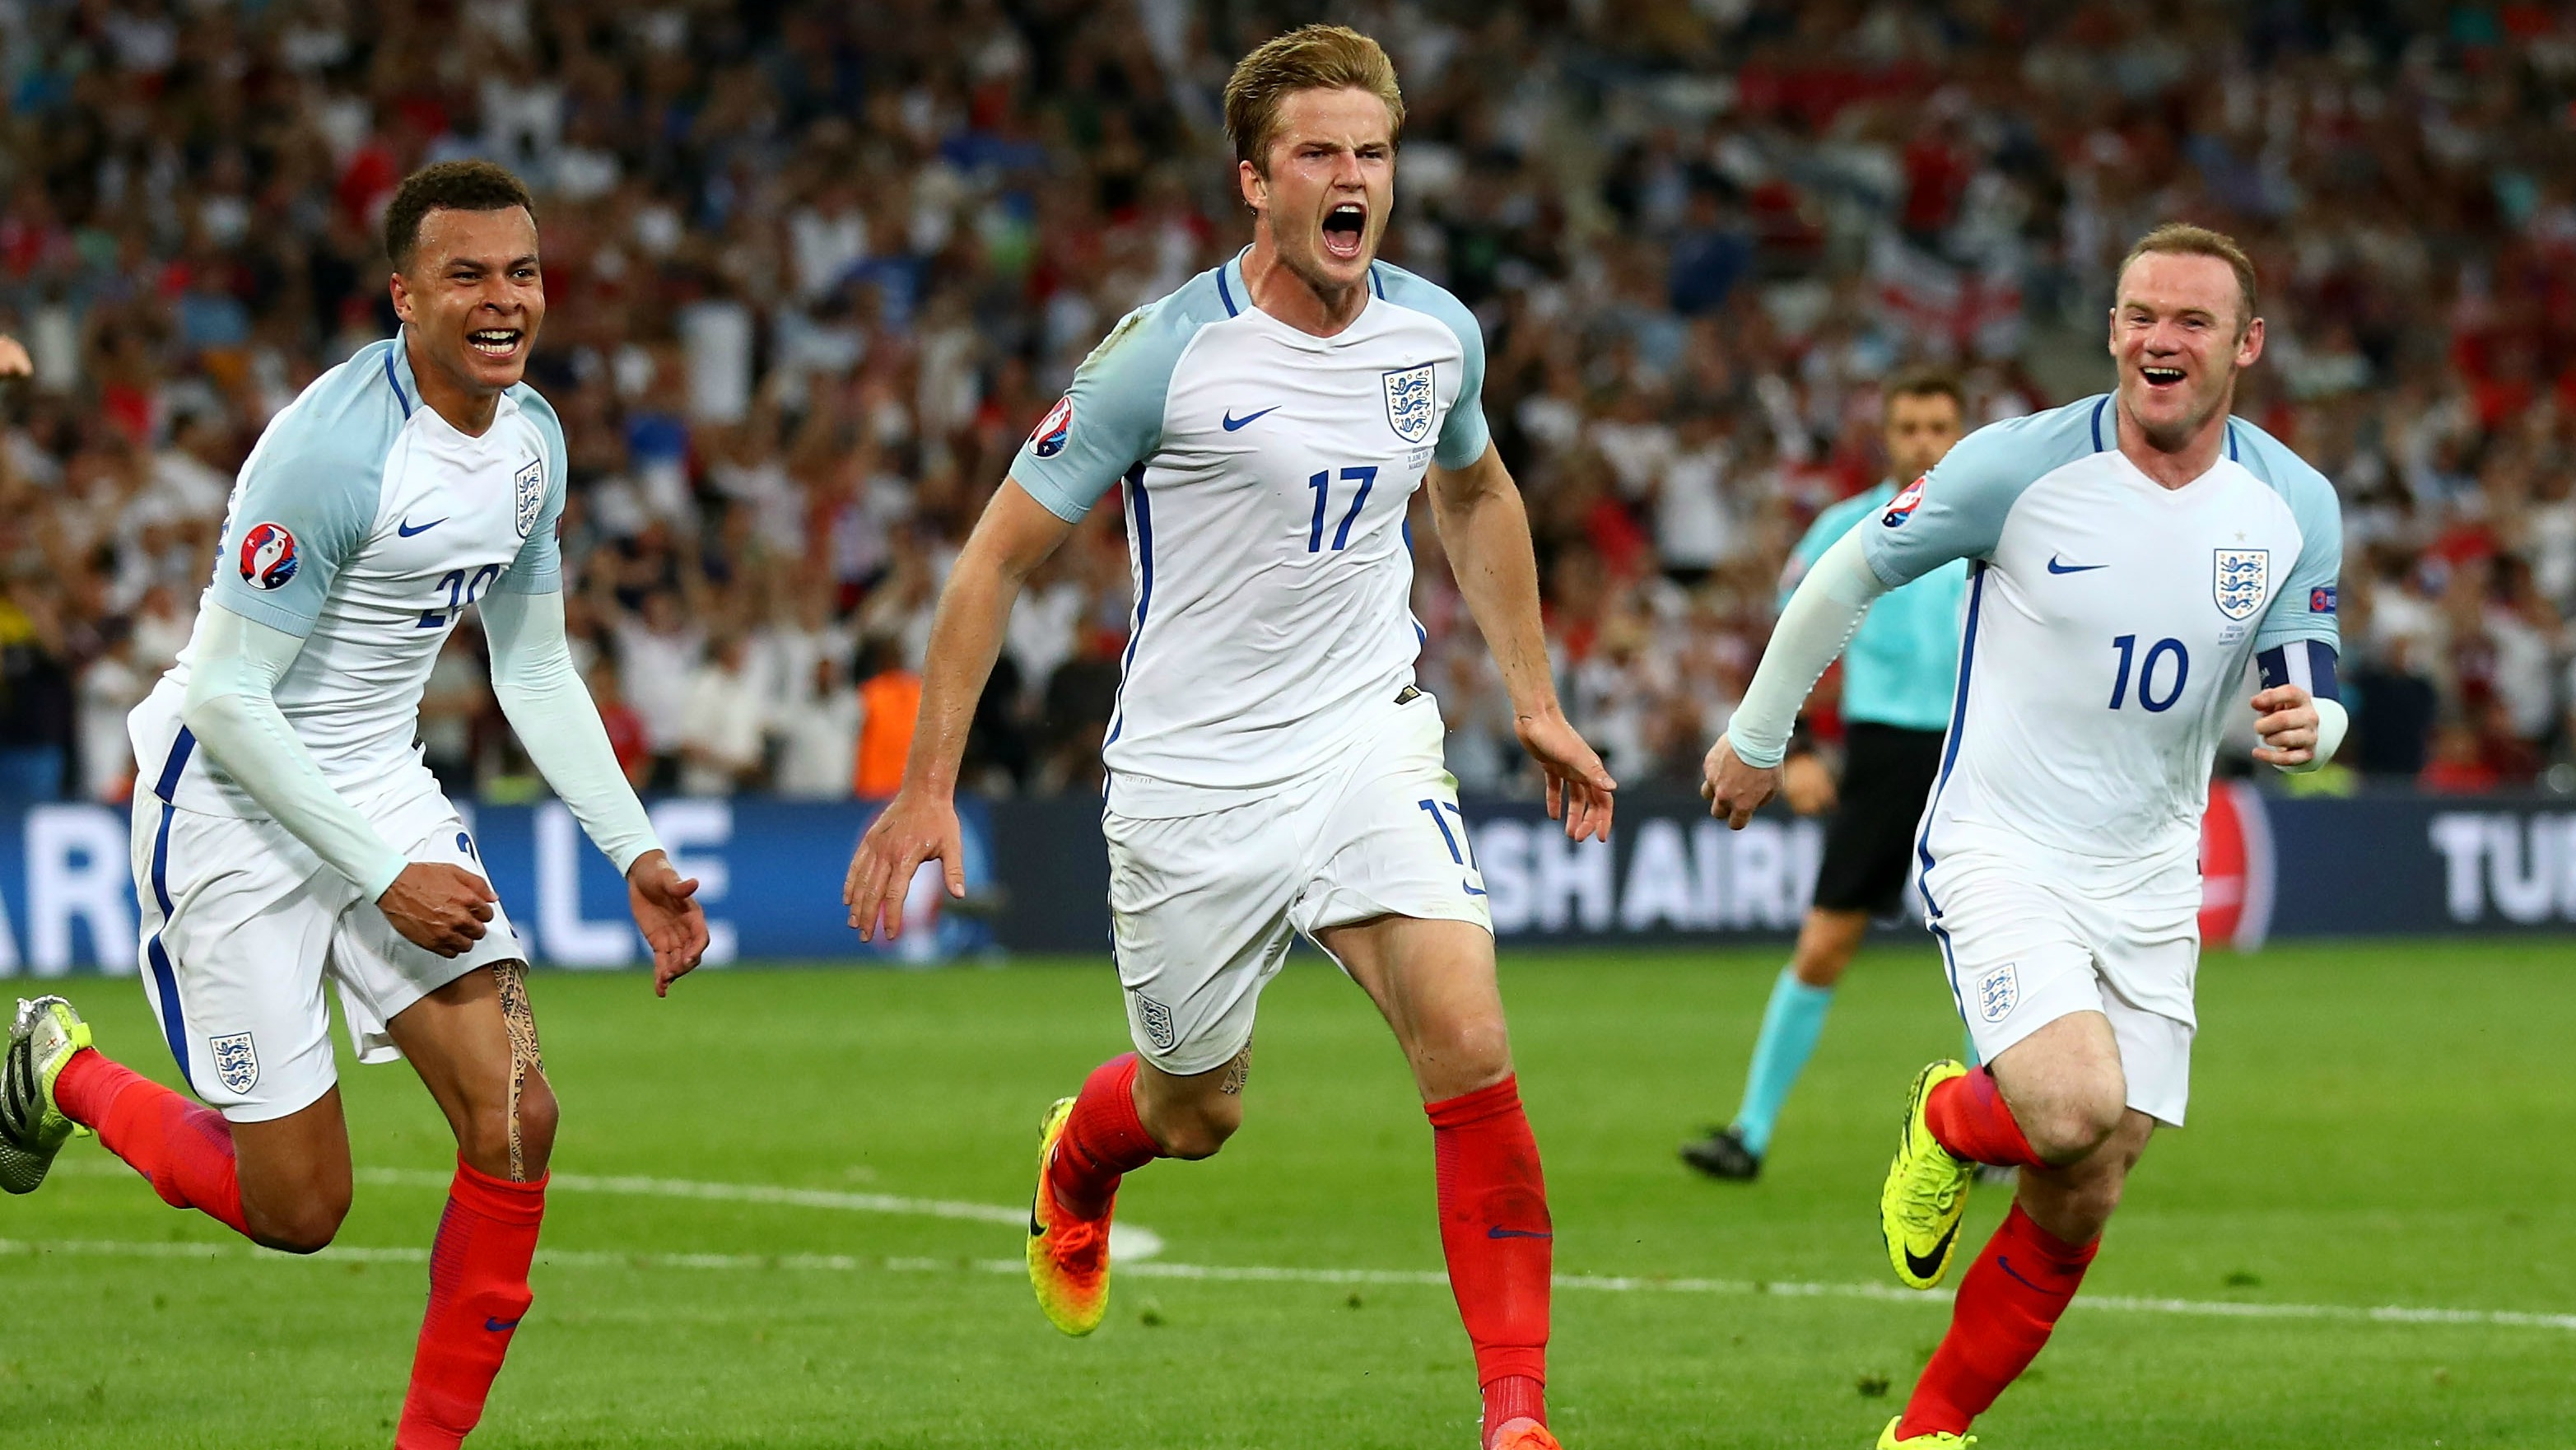 Eric Dier has been England's best player and it's not even close